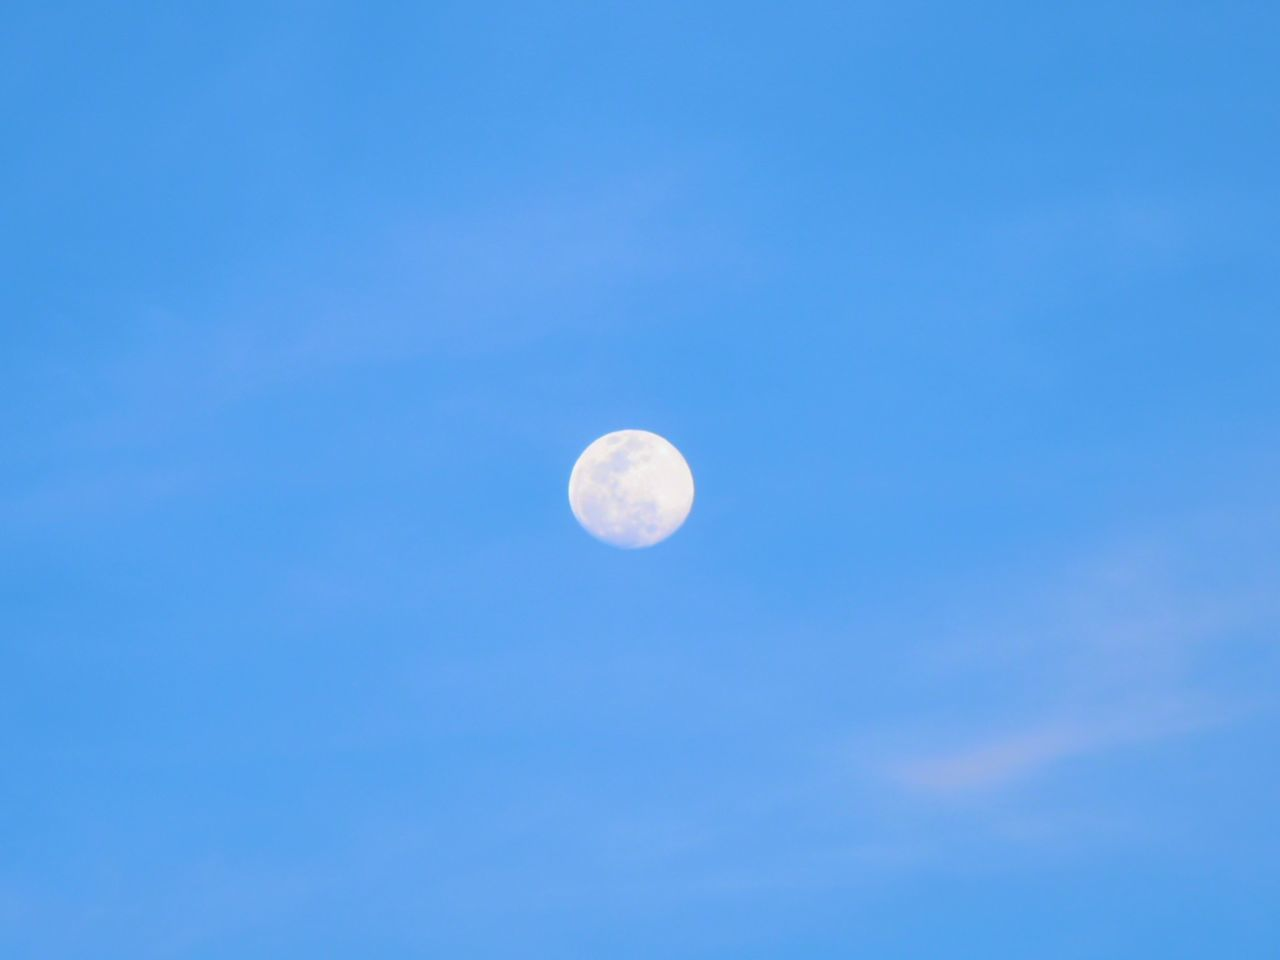 sky, beauty in nature, space, astronomy, moon, blue, low angle view, tranquility, scenics - nature, tranquil scene, no people, planetary moon, nature, idyllic, night, clear sky, copy space, outdoors, space exploration, astrology, space and astronomy